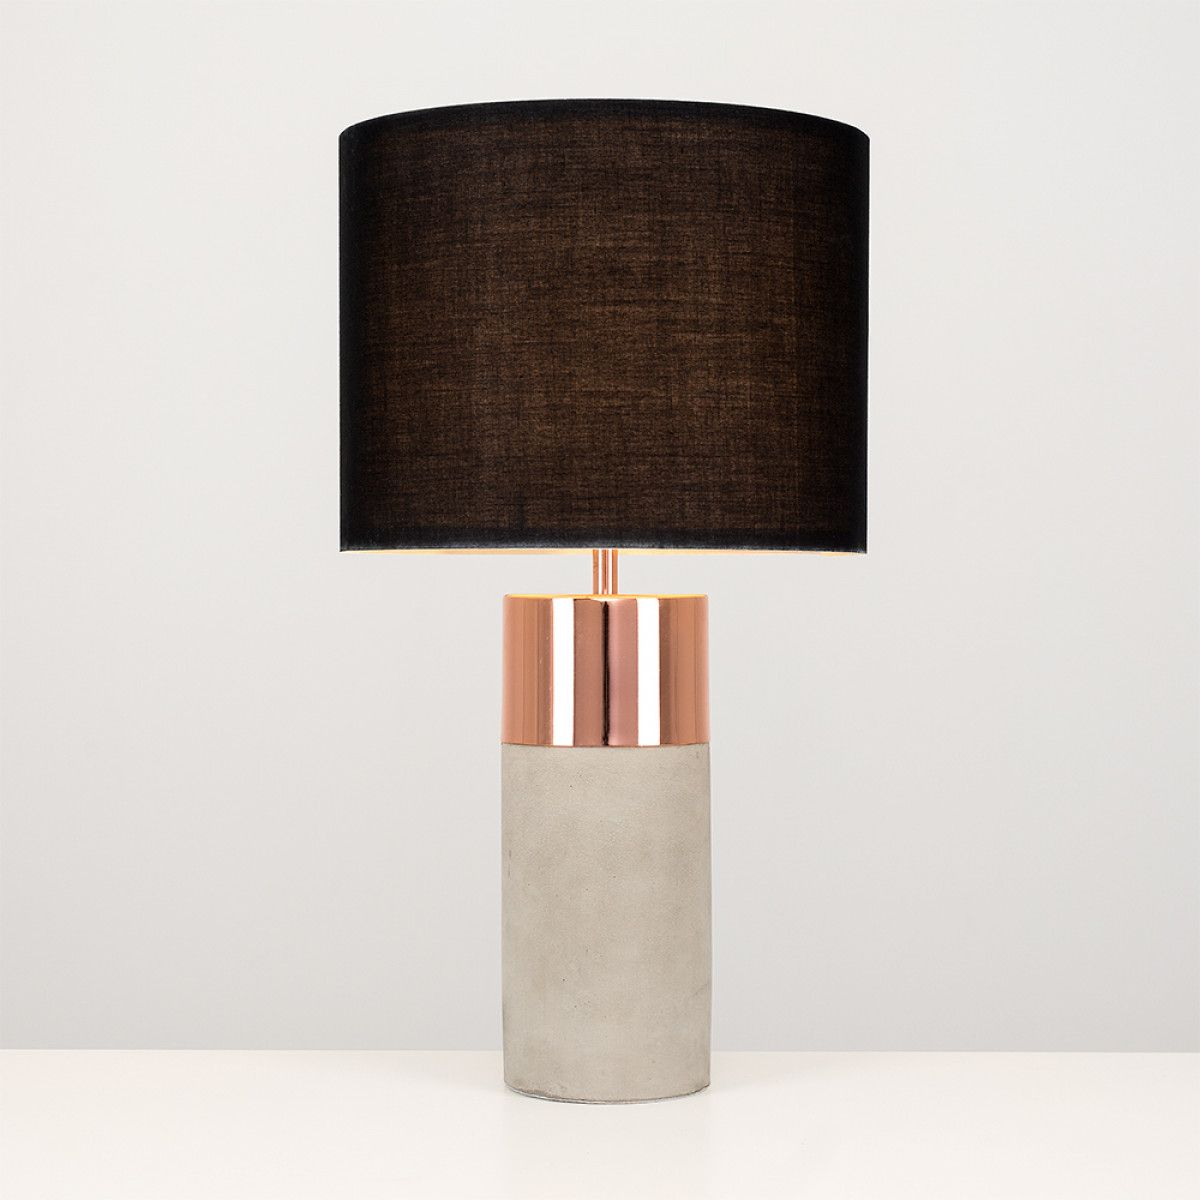 iconic lighting. Finley Cement And Copper Table Lamp, Black Shade Iconic Lighting